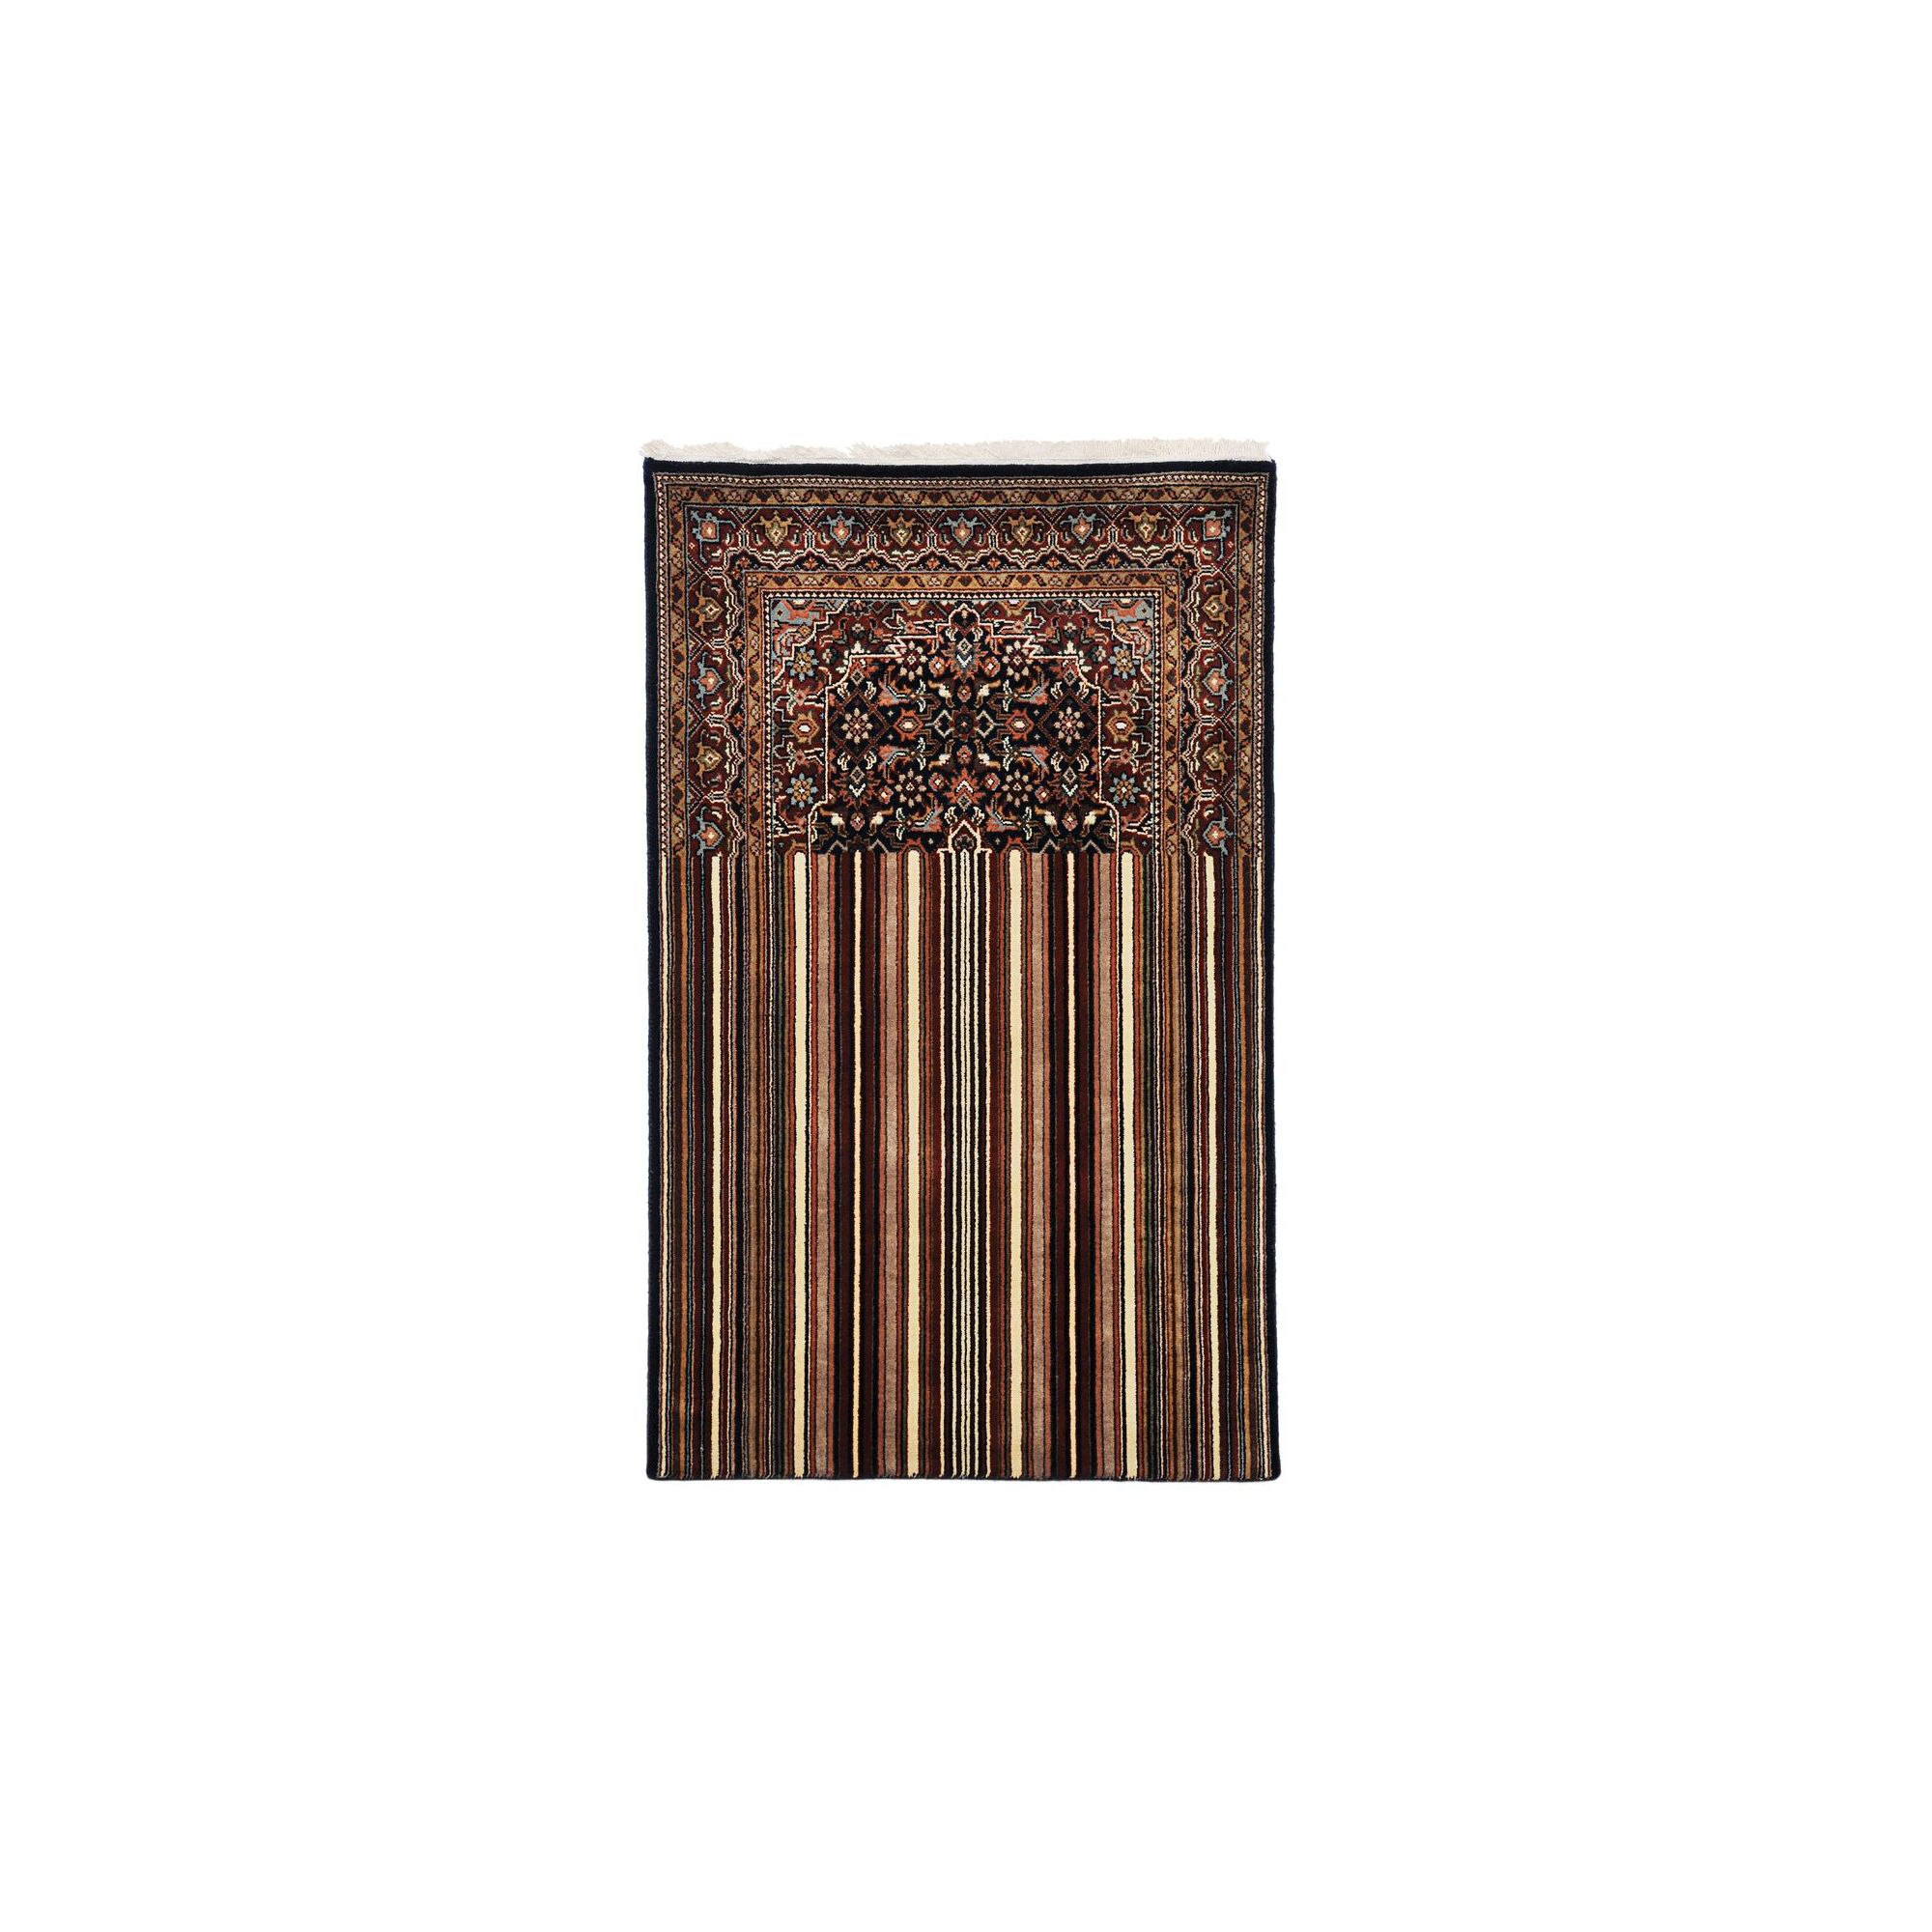 I + I Editions Playing with Tradition Knotted Rug - 120cm x 75cm at Tesco Direct